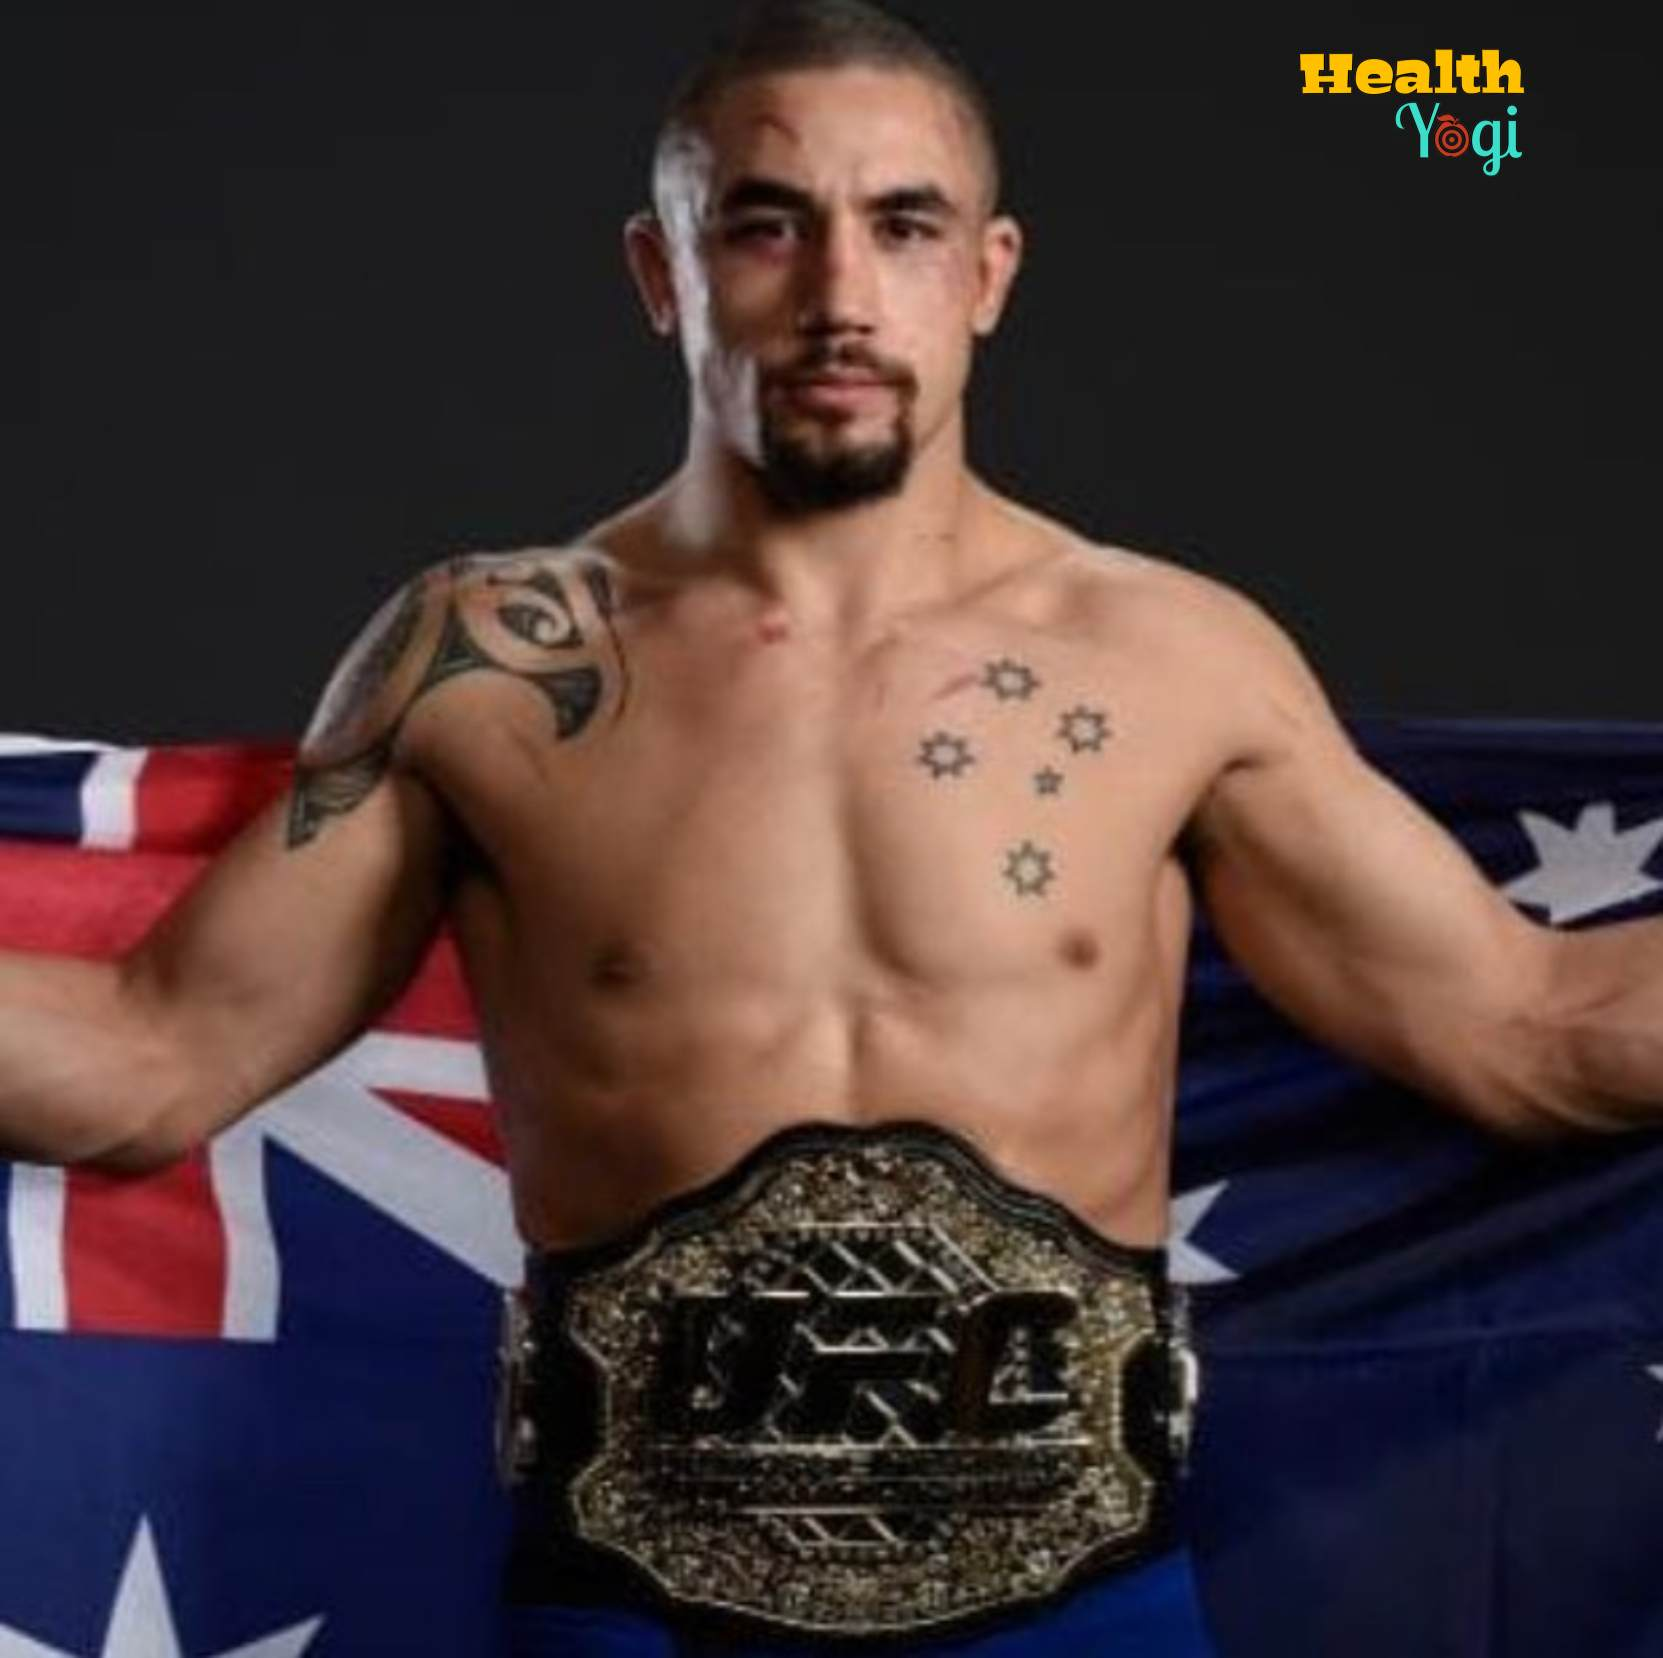 Robert Whittaker Diet Plan and Workout Routine